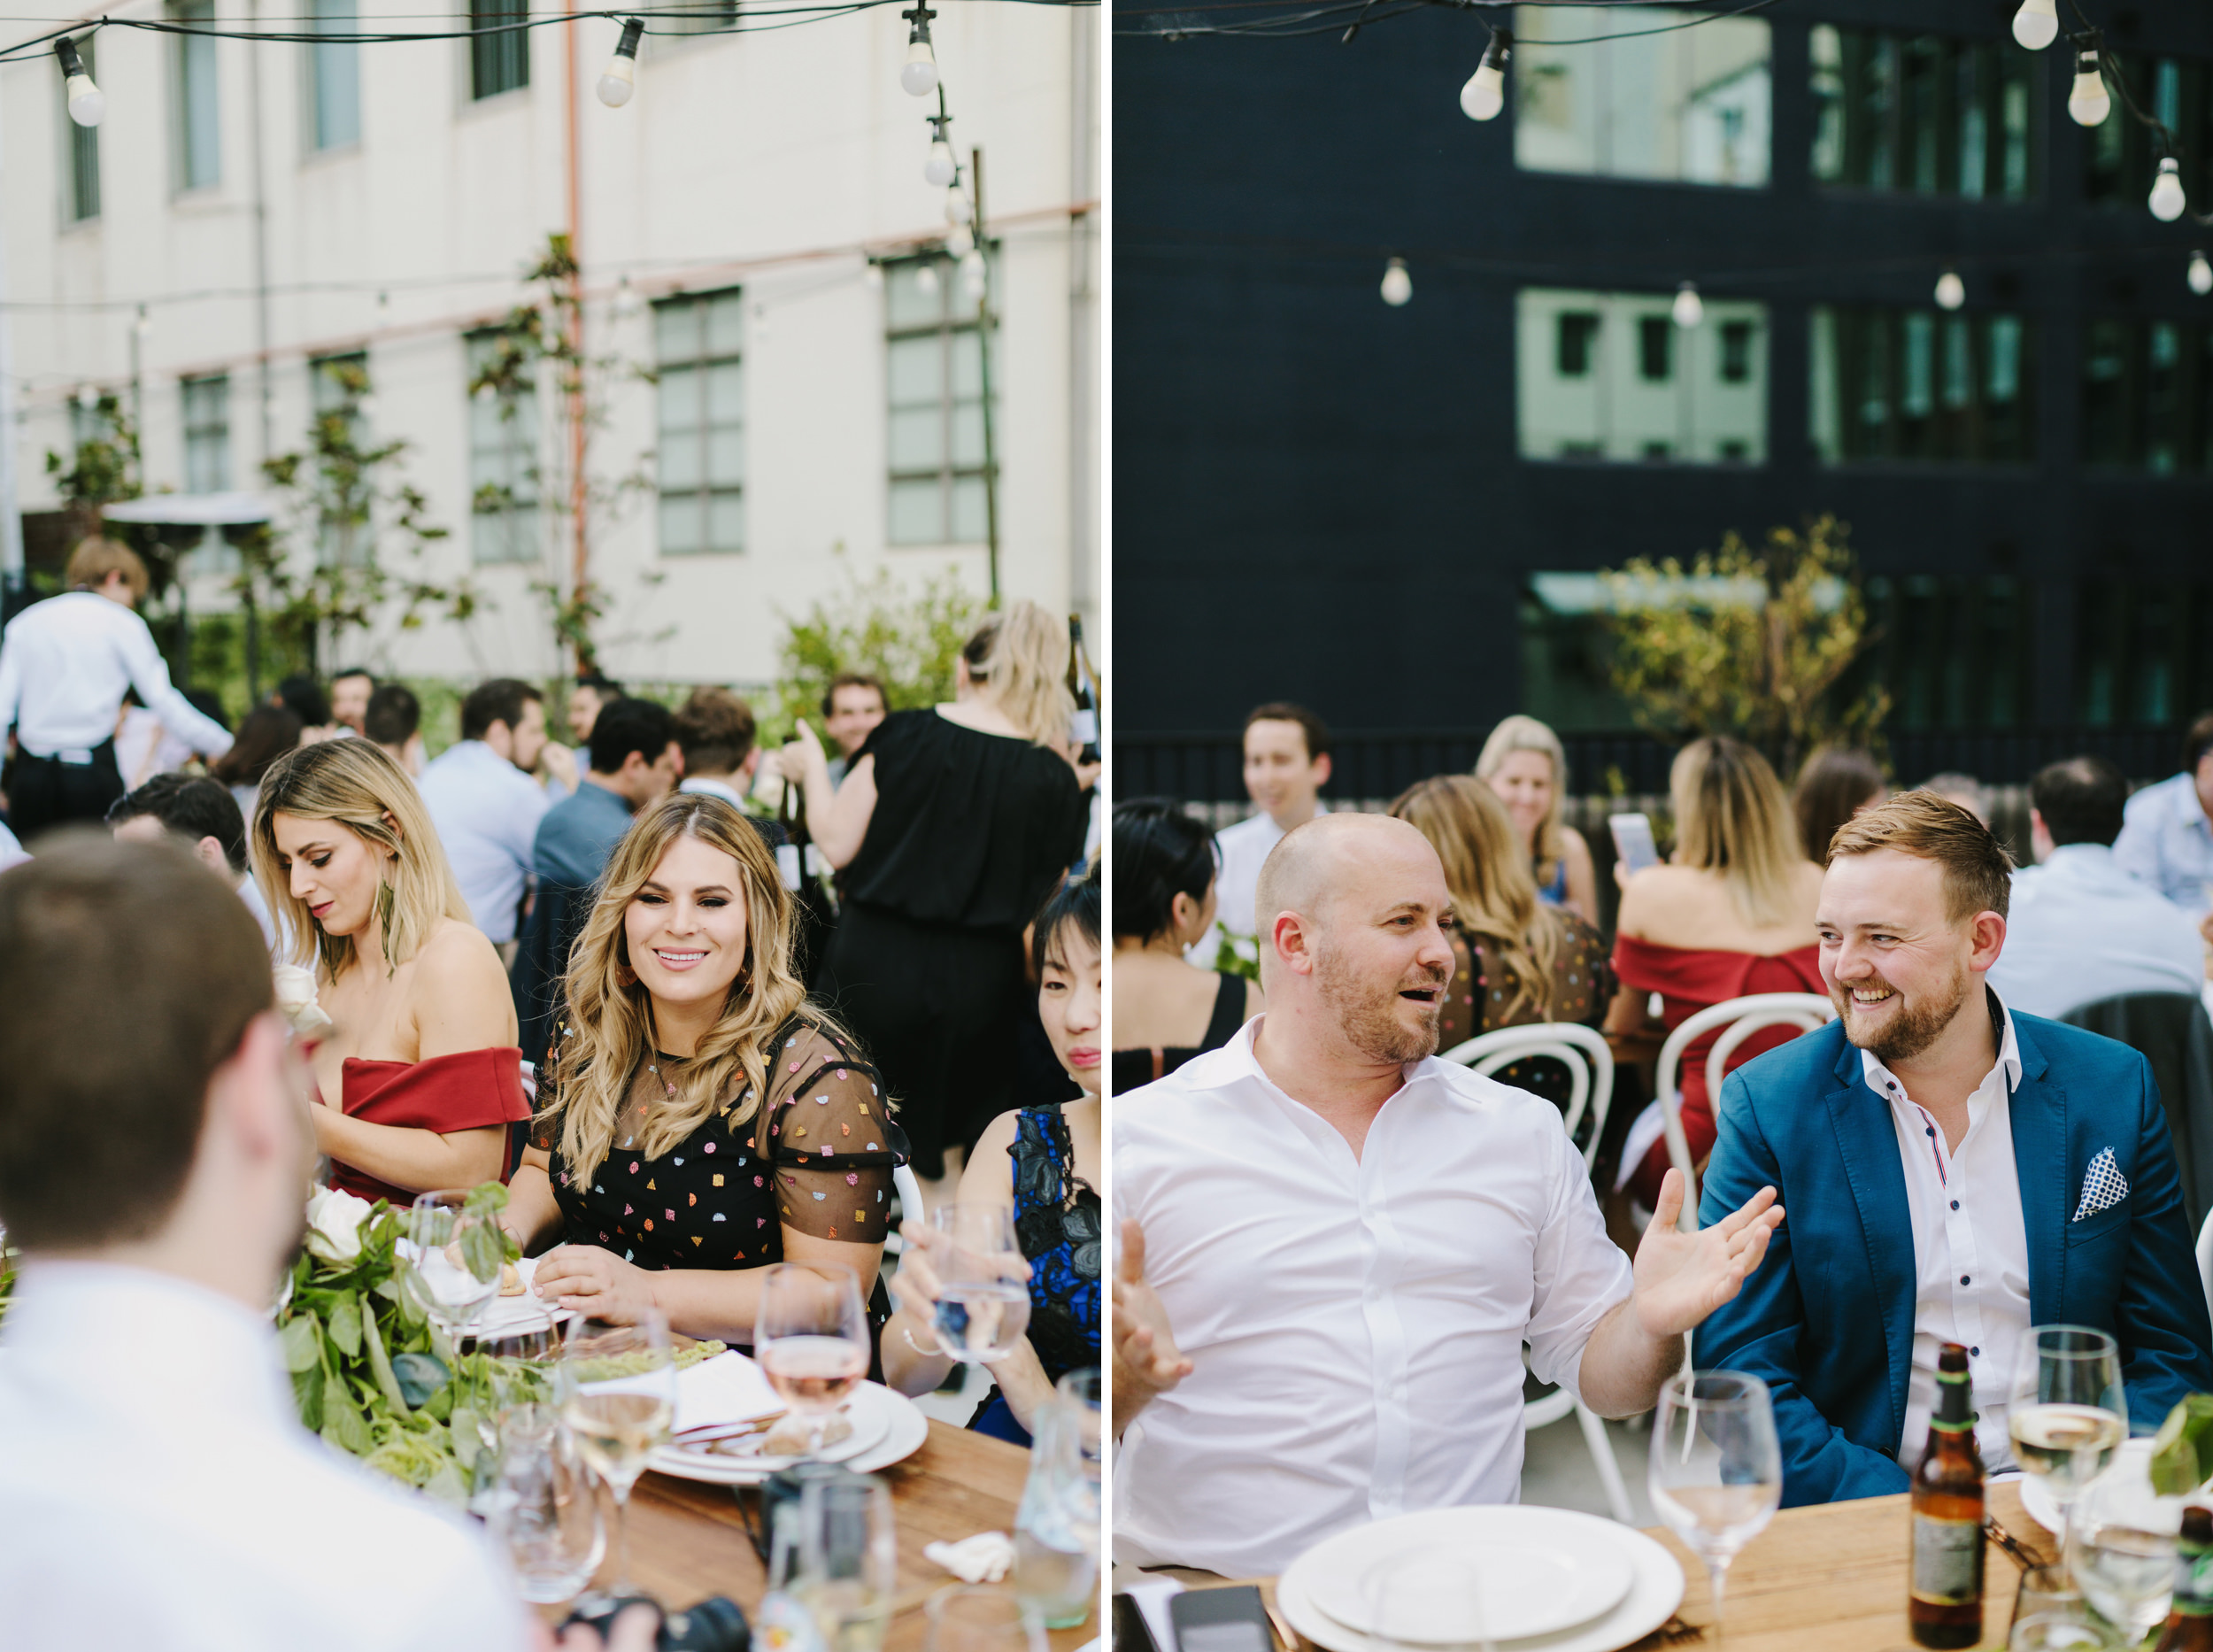 Melbourne_City_Rooftop_Wedding_Tyson_Brigette095.JPG